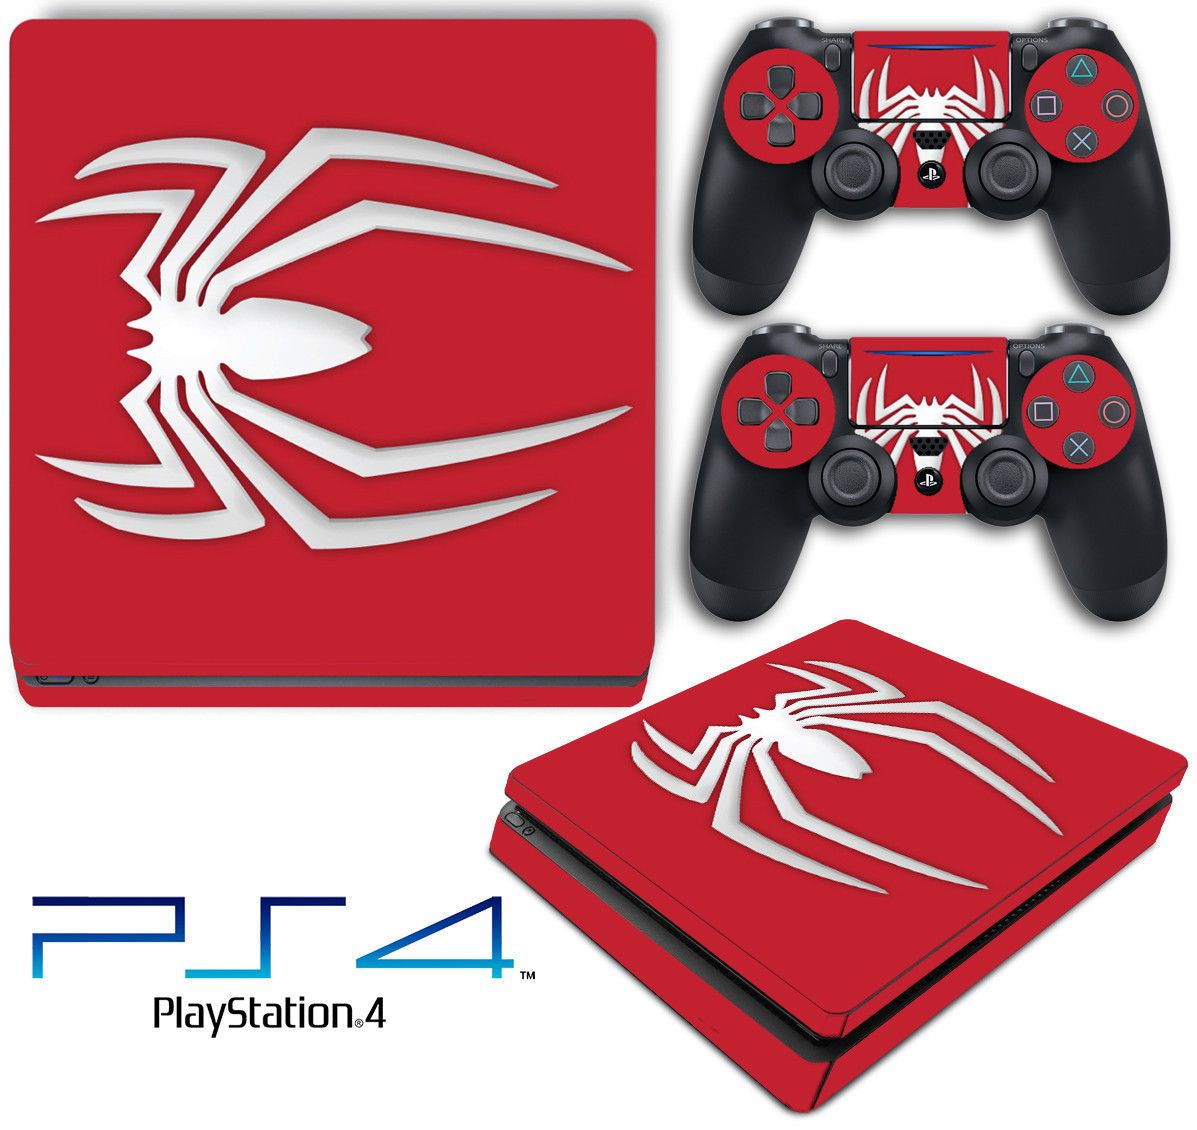 spider man ps4 limited edition ebay